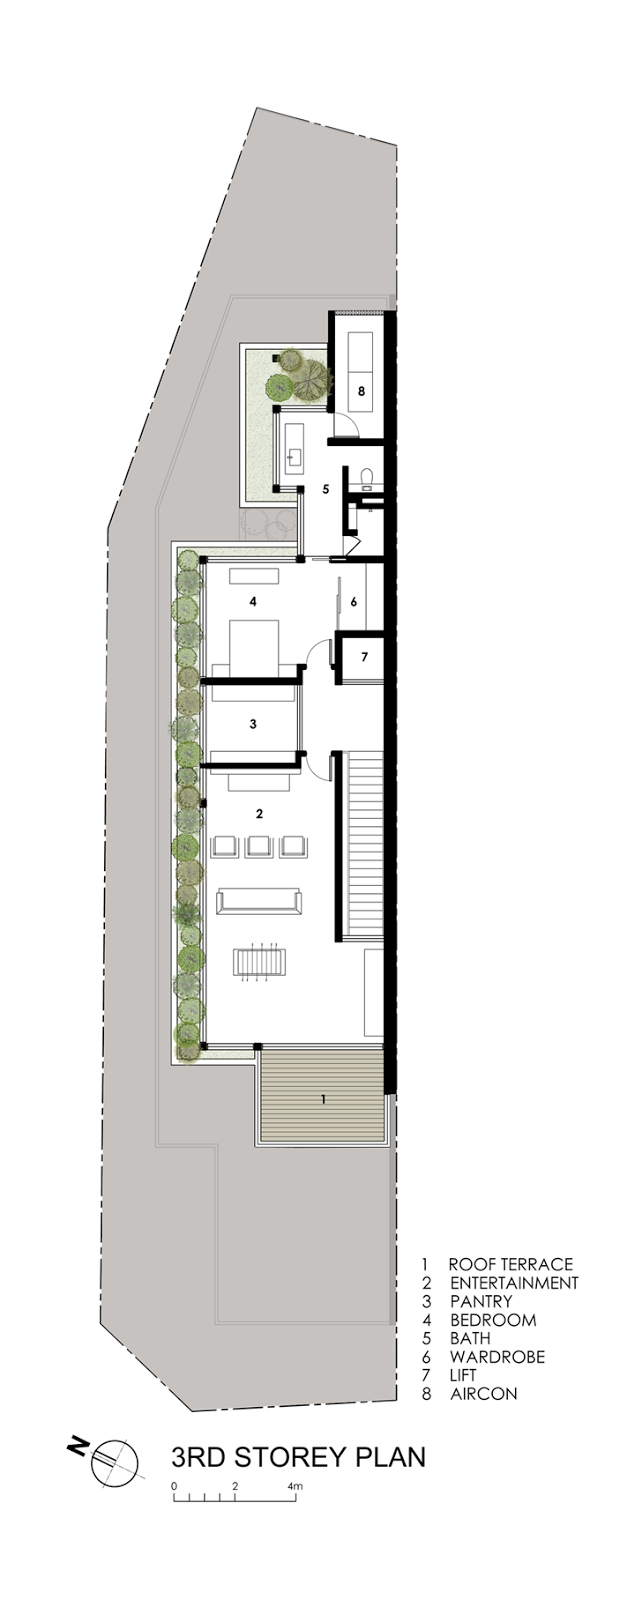 Second floor plan of Modern House by Wallflower Architecture + Design